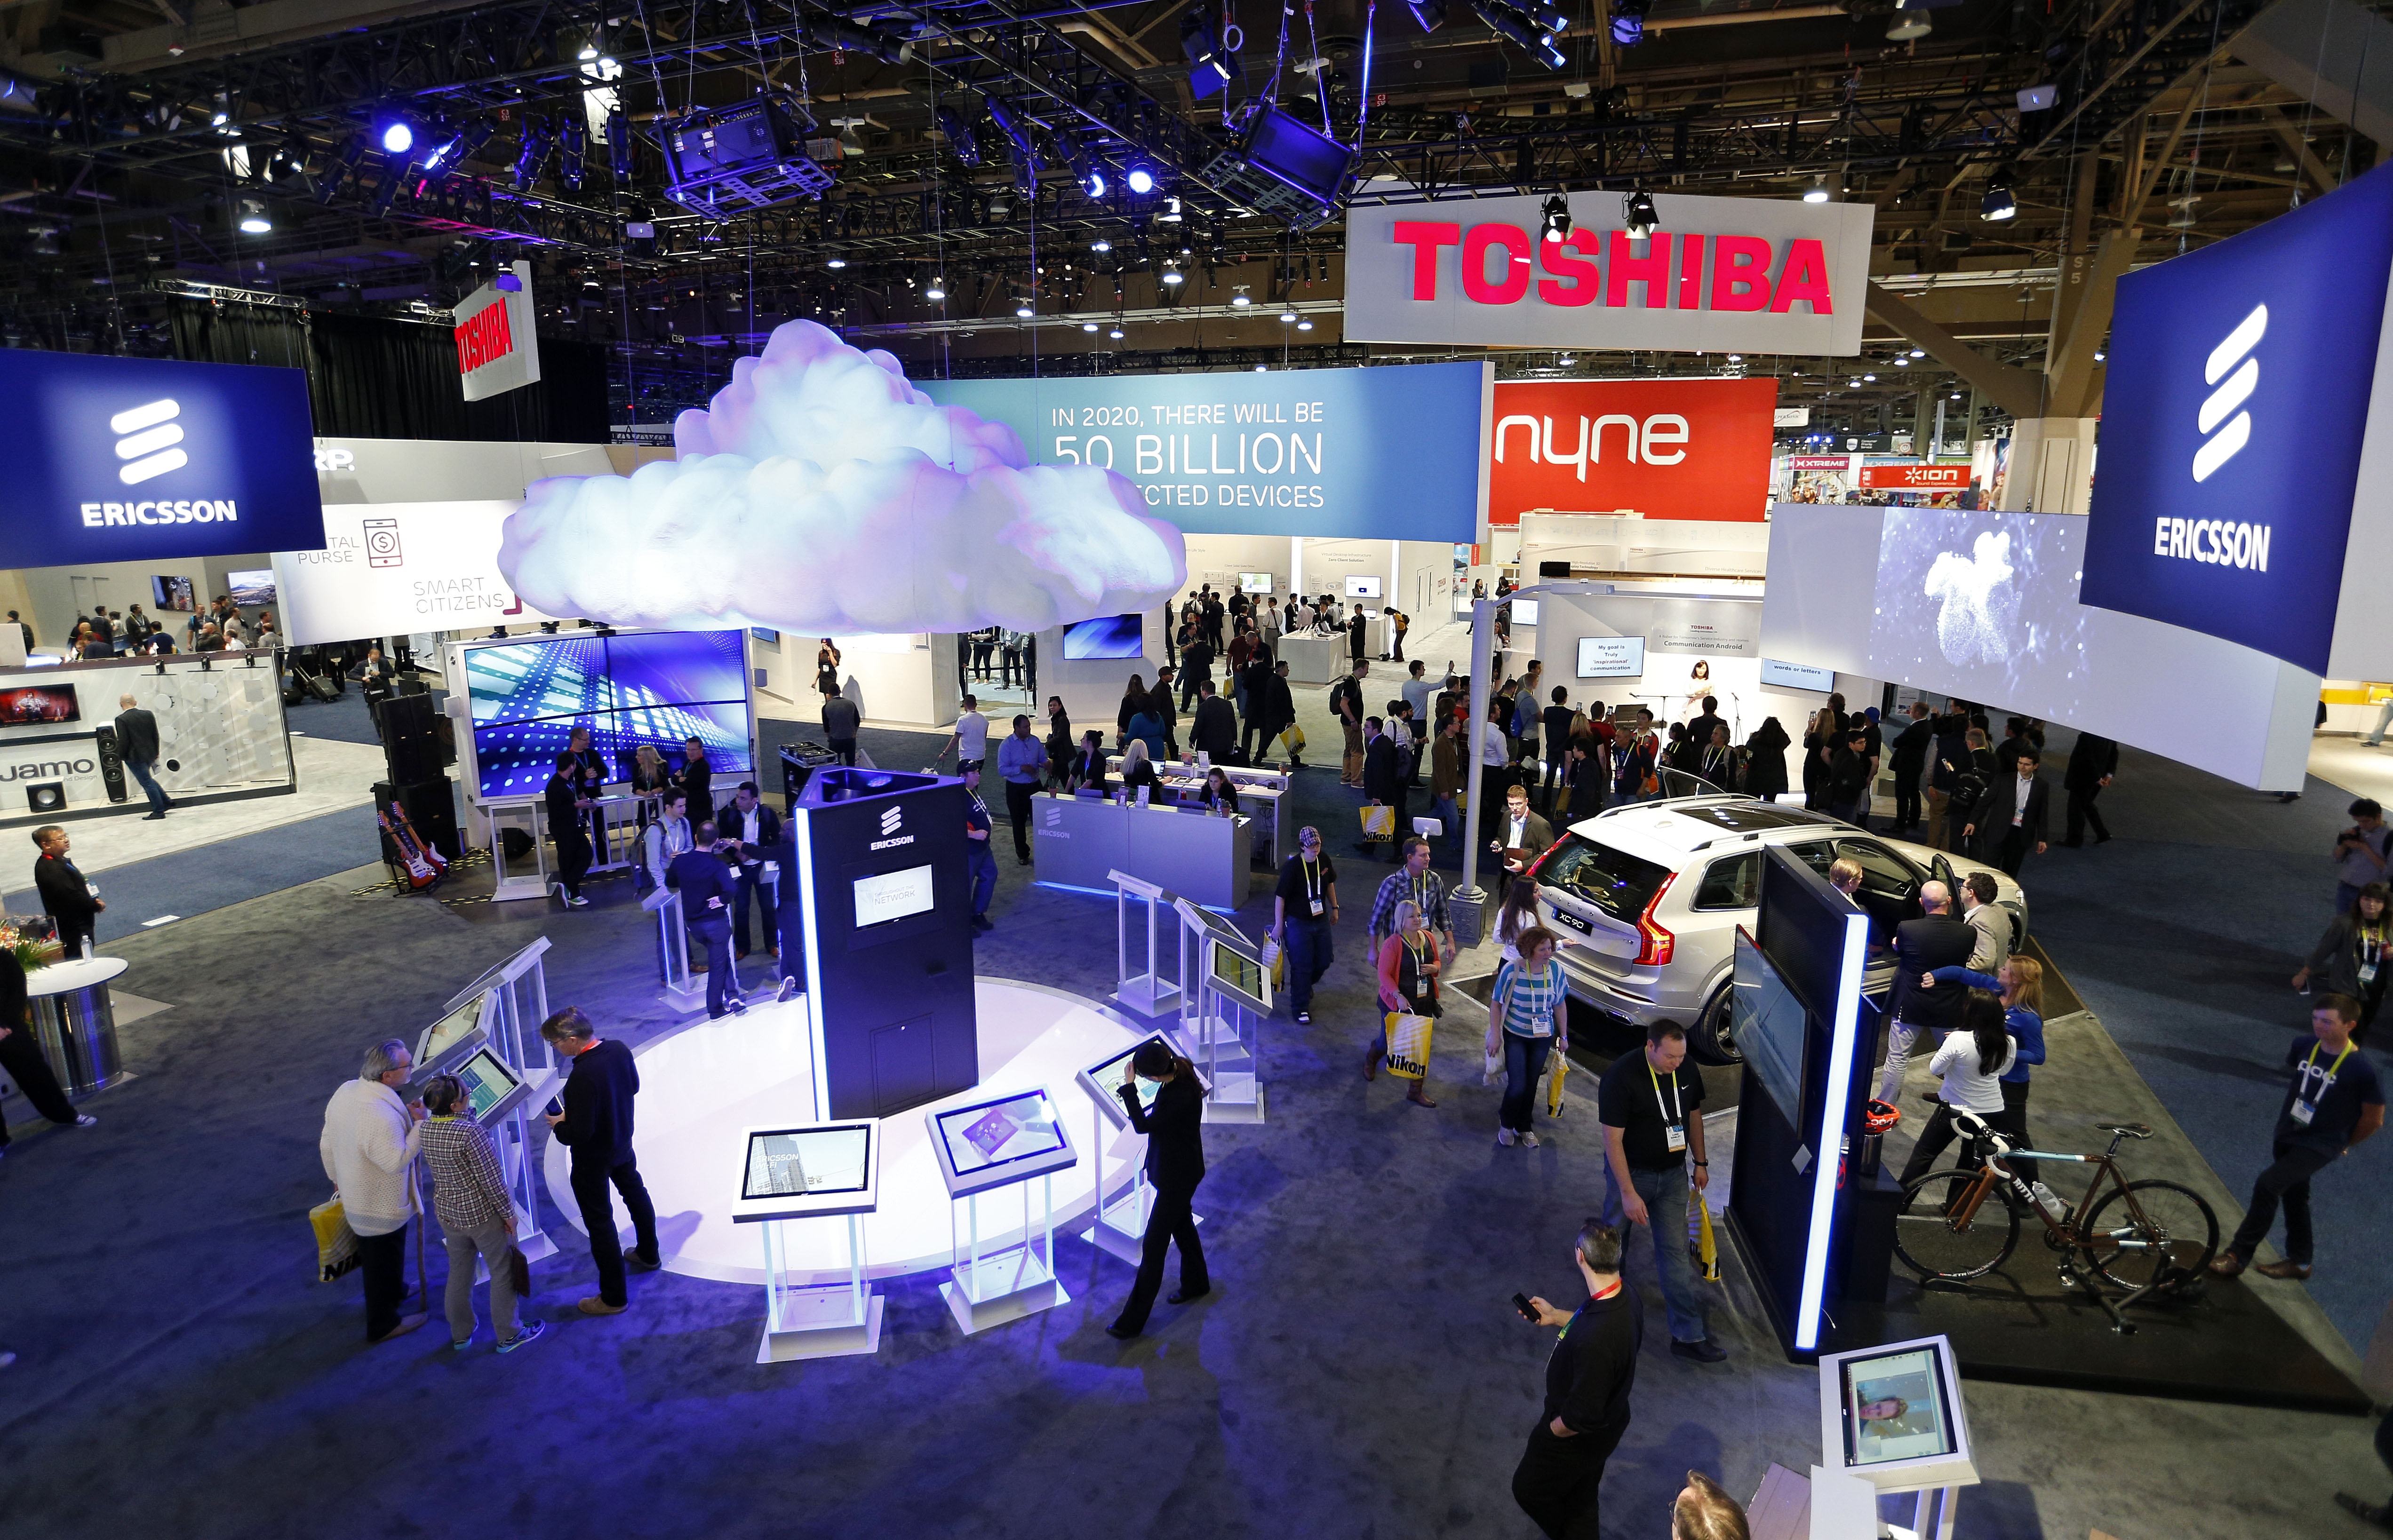 Column: What's expected at CES this year?